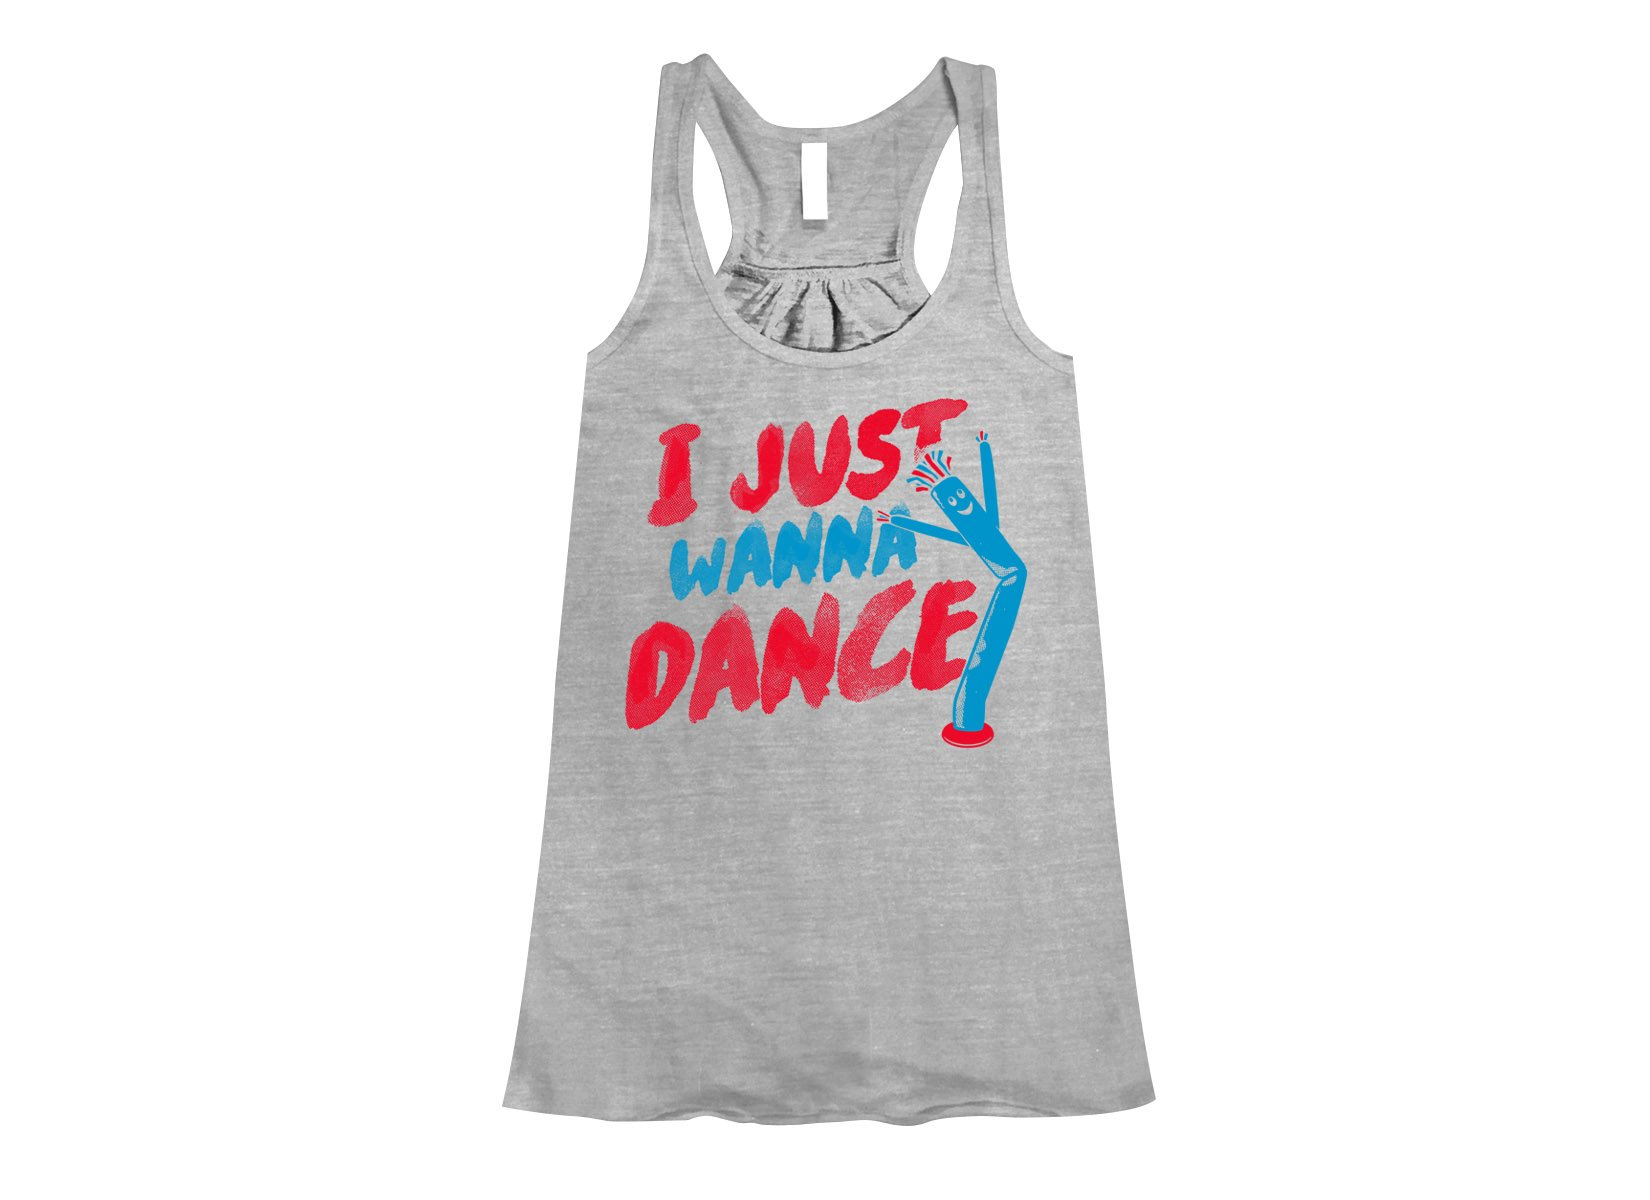 I Just Wanna Dance on Womens Tanks T-Shirt